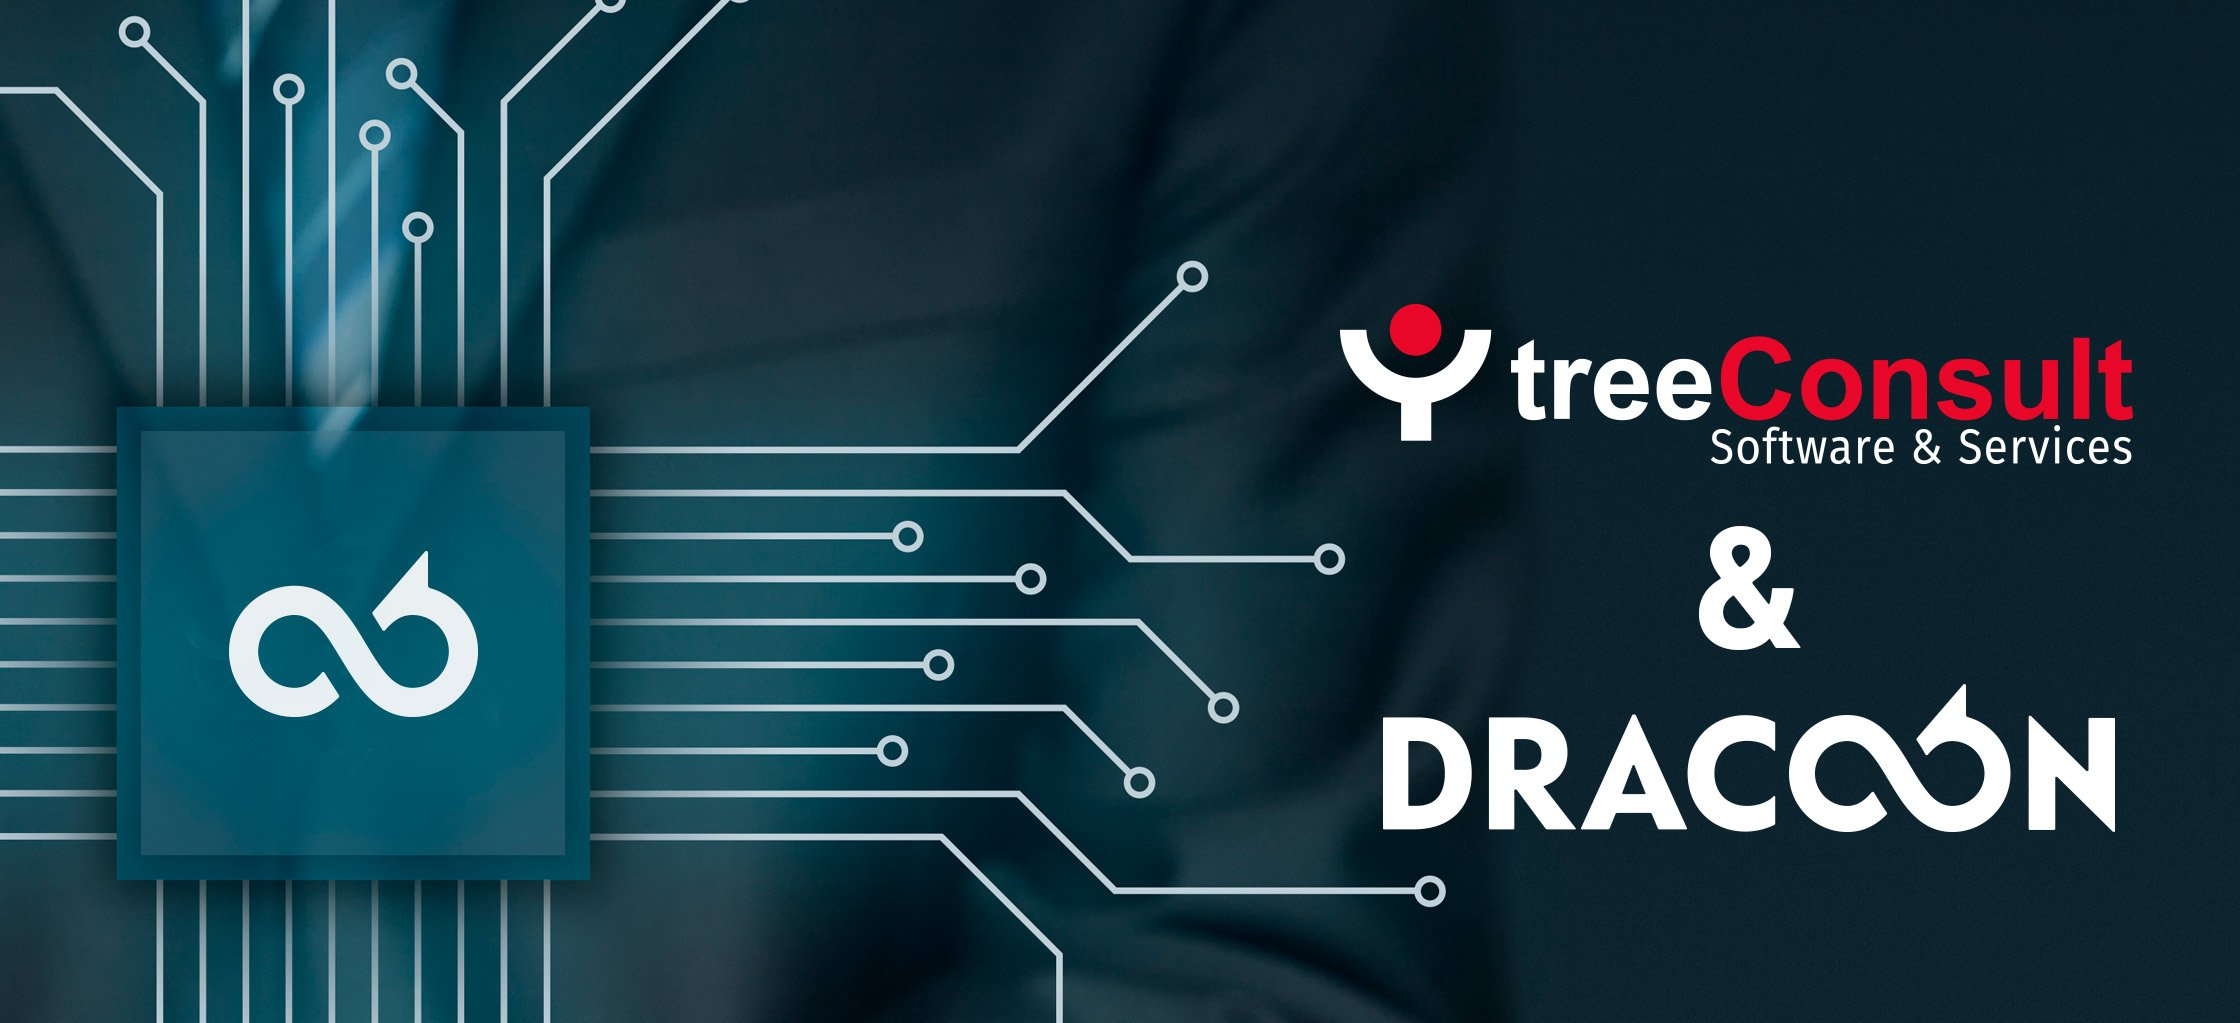 DRACOON and treeConsult enable secure email traffic in IBM Notes